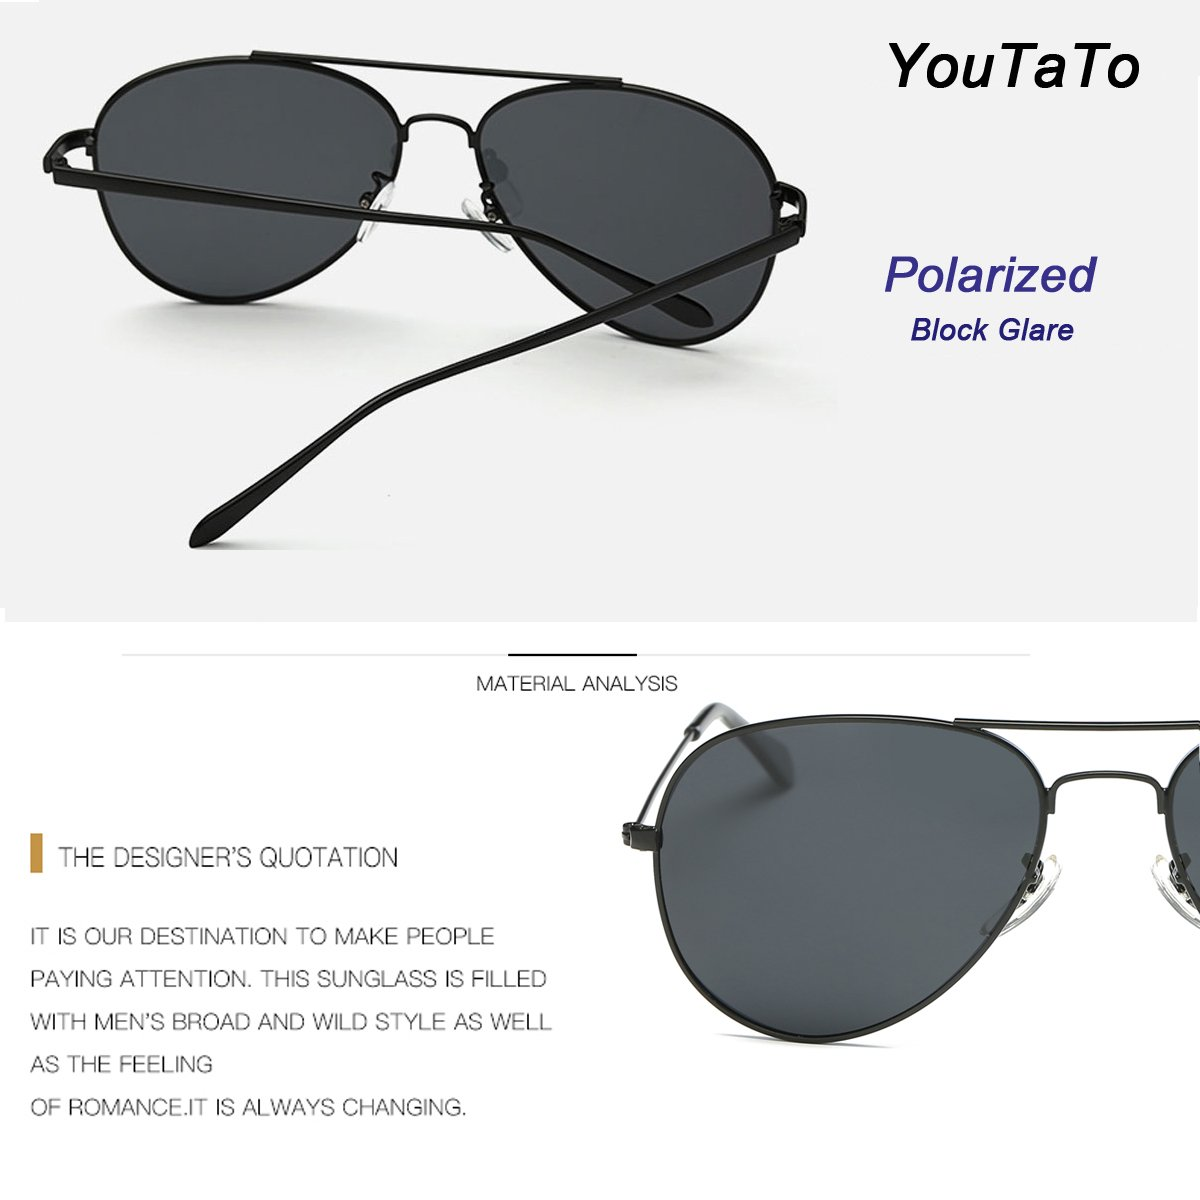 f0e2cd6165 Youtato Adult Polarized Sunglasses Fashion Mirror Lens Metal Frame UV400  Black at Amazon Men s Clothing store